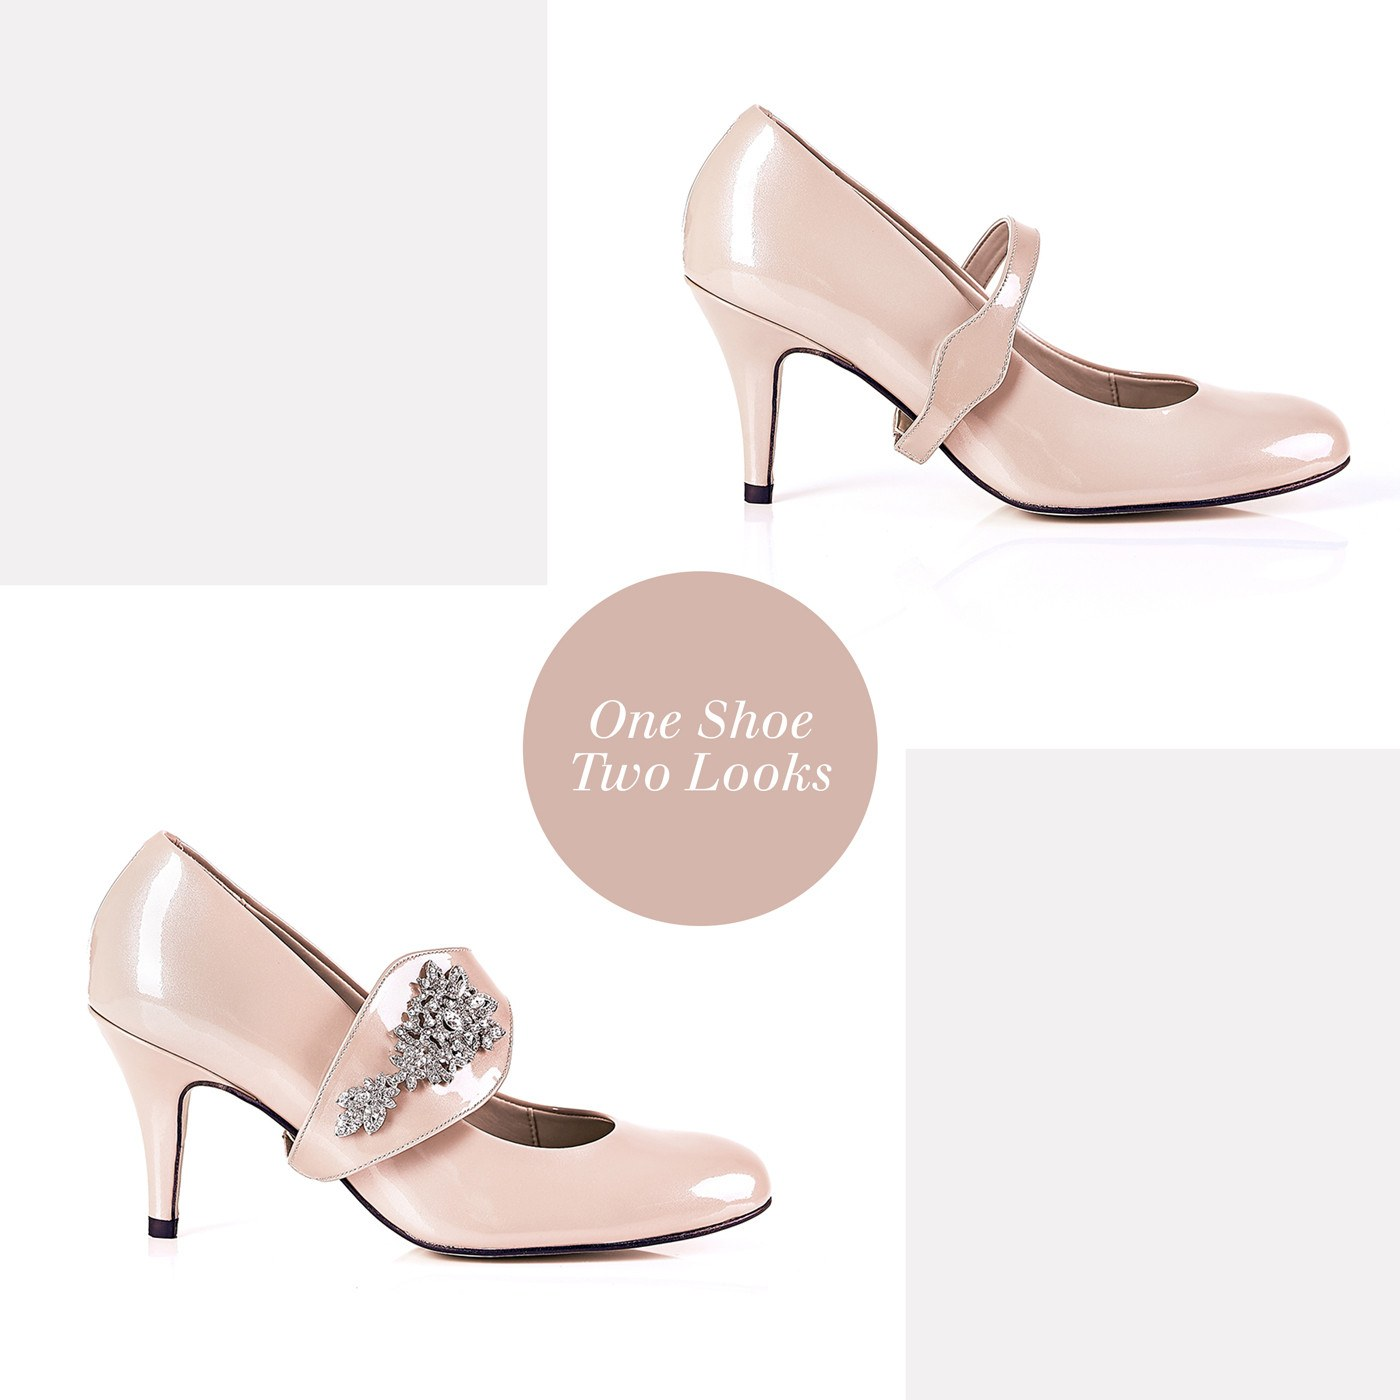 The Moon is Mine - Shoes by Shaherazad